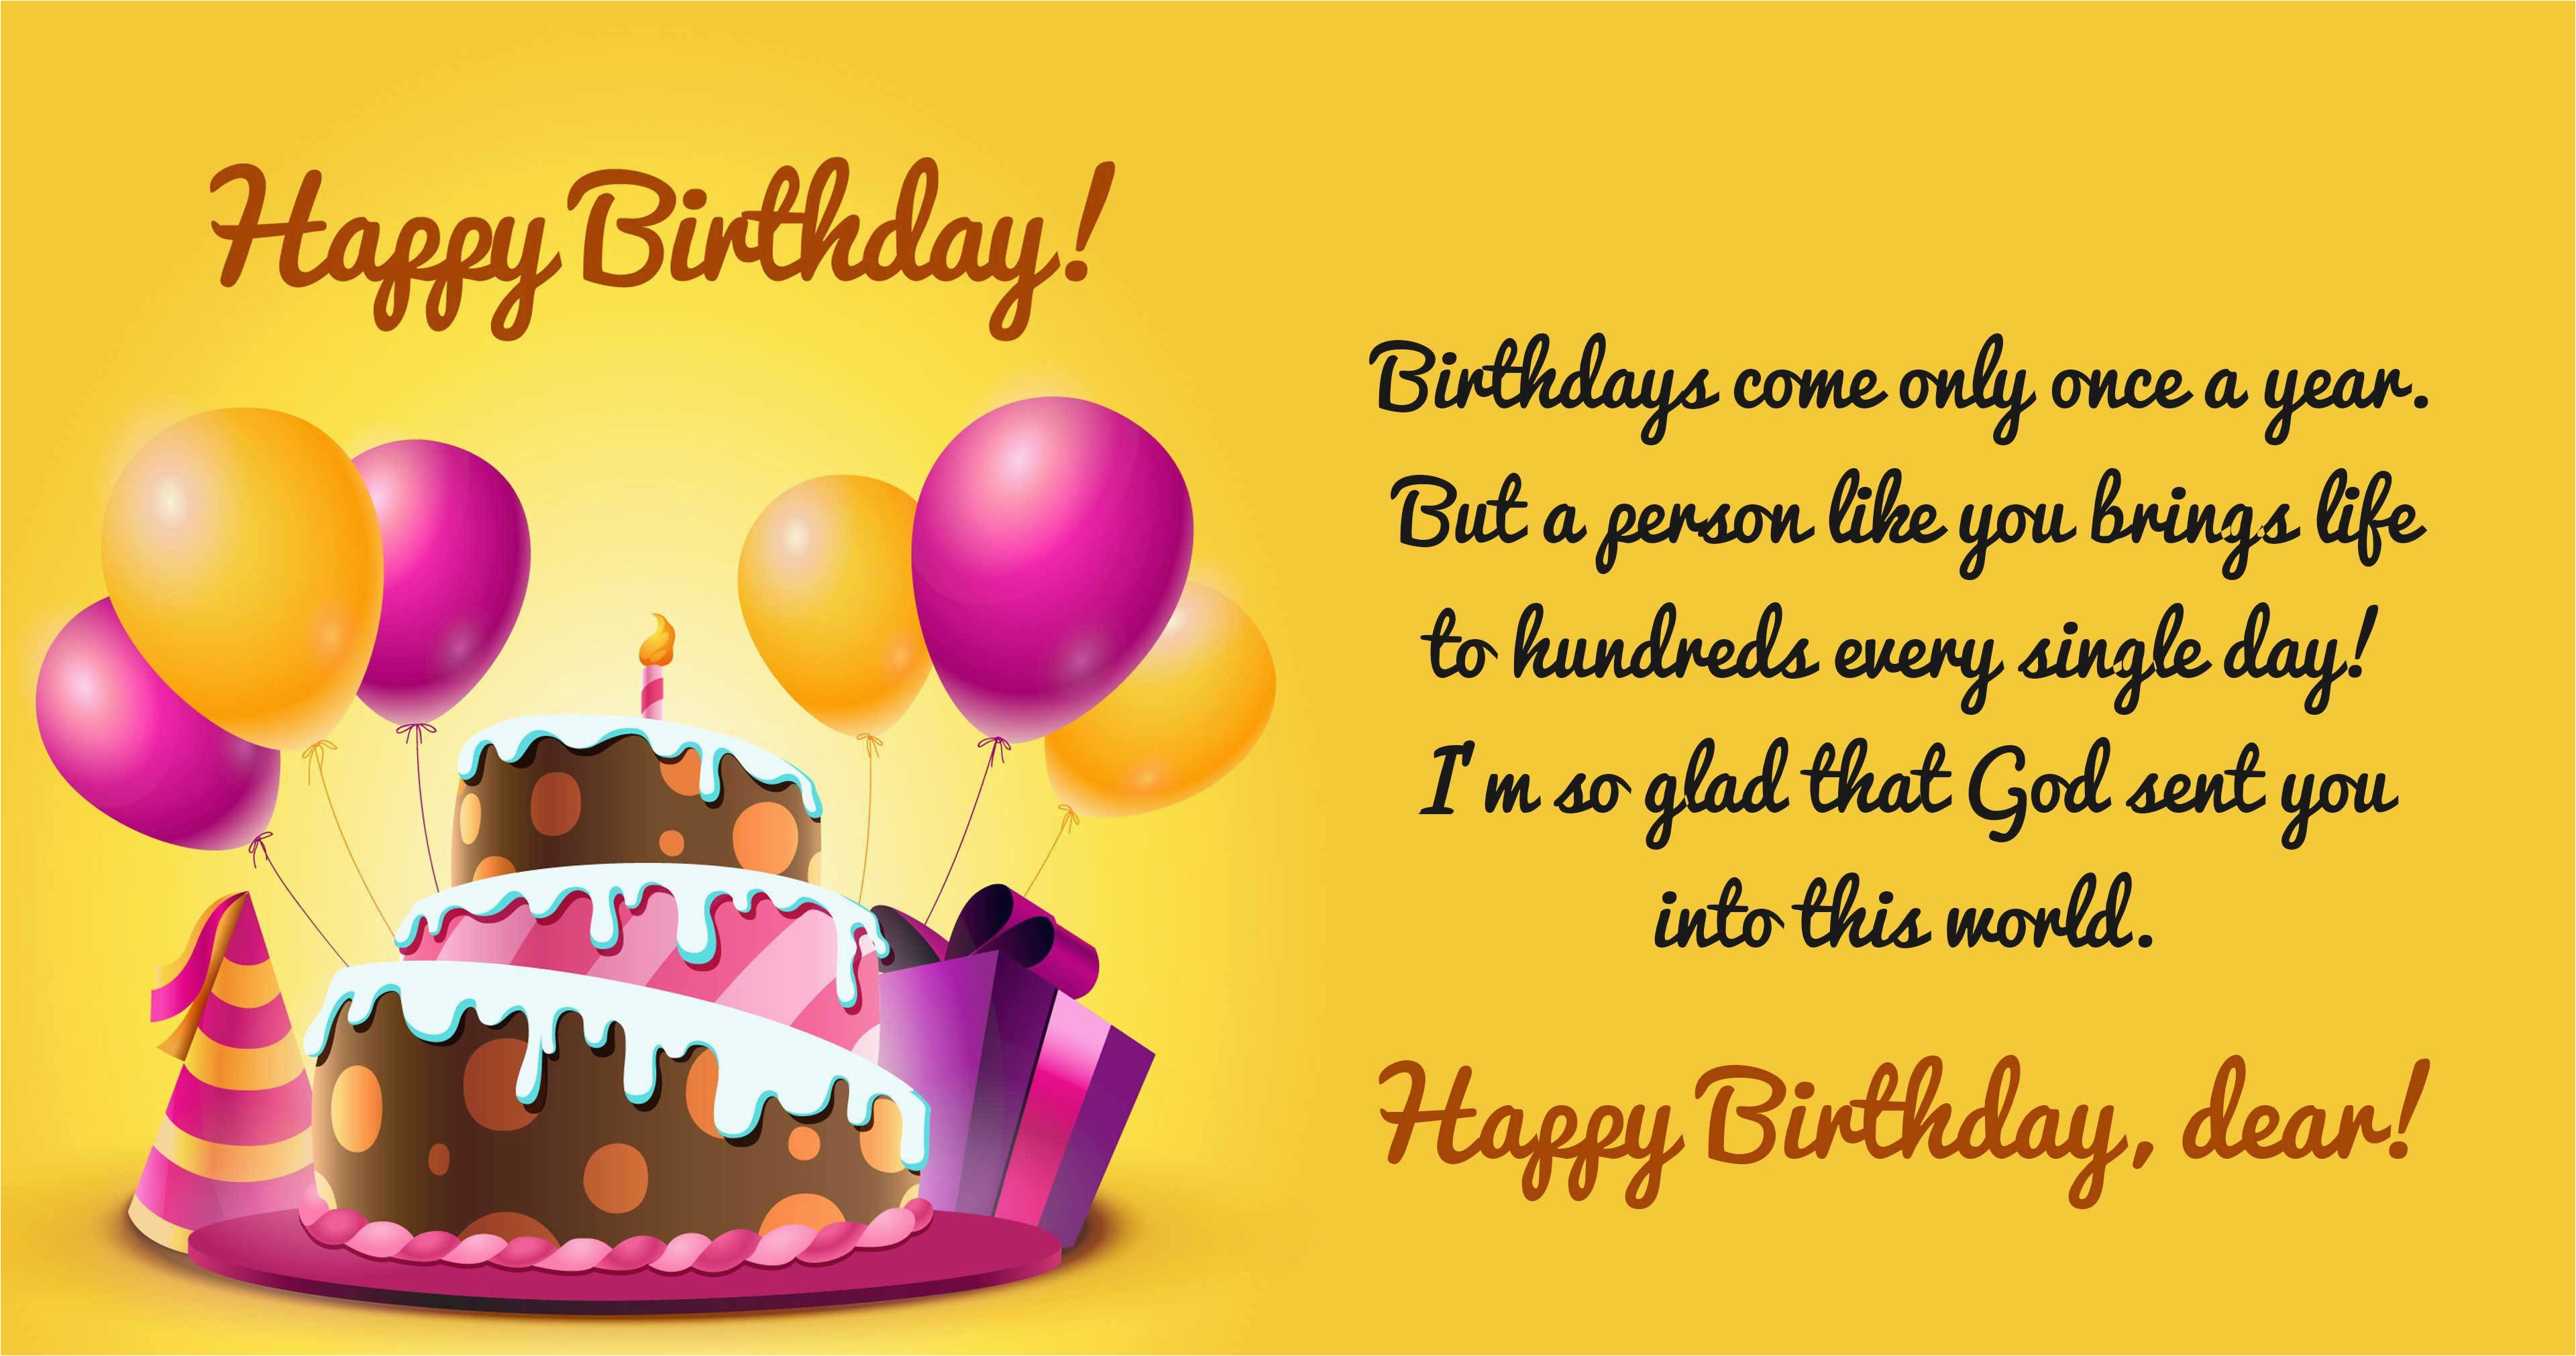 happy birthday quotes sayings wishes images lines